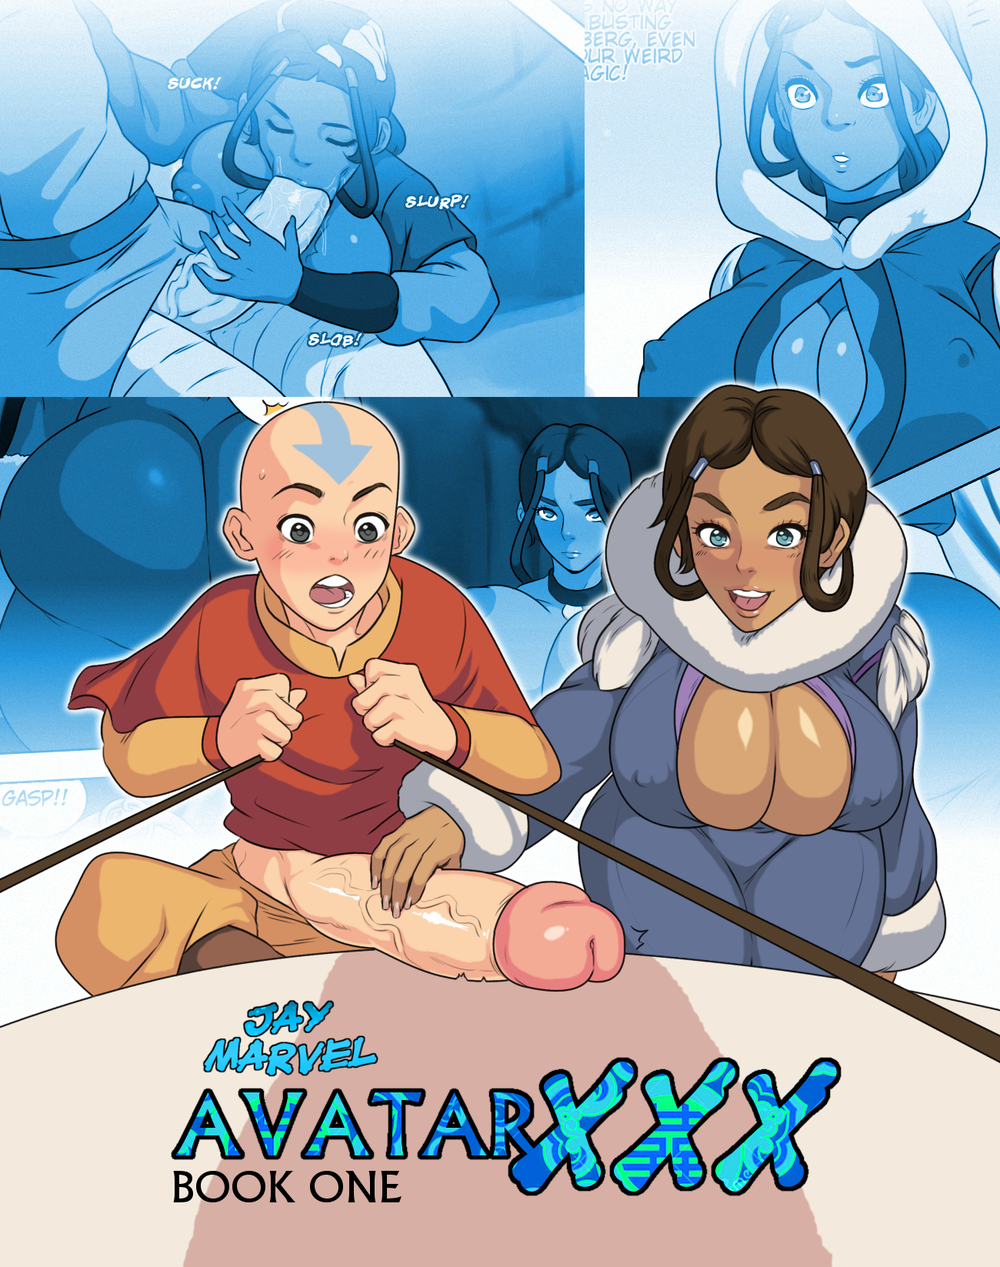 Avatar XXX Book One